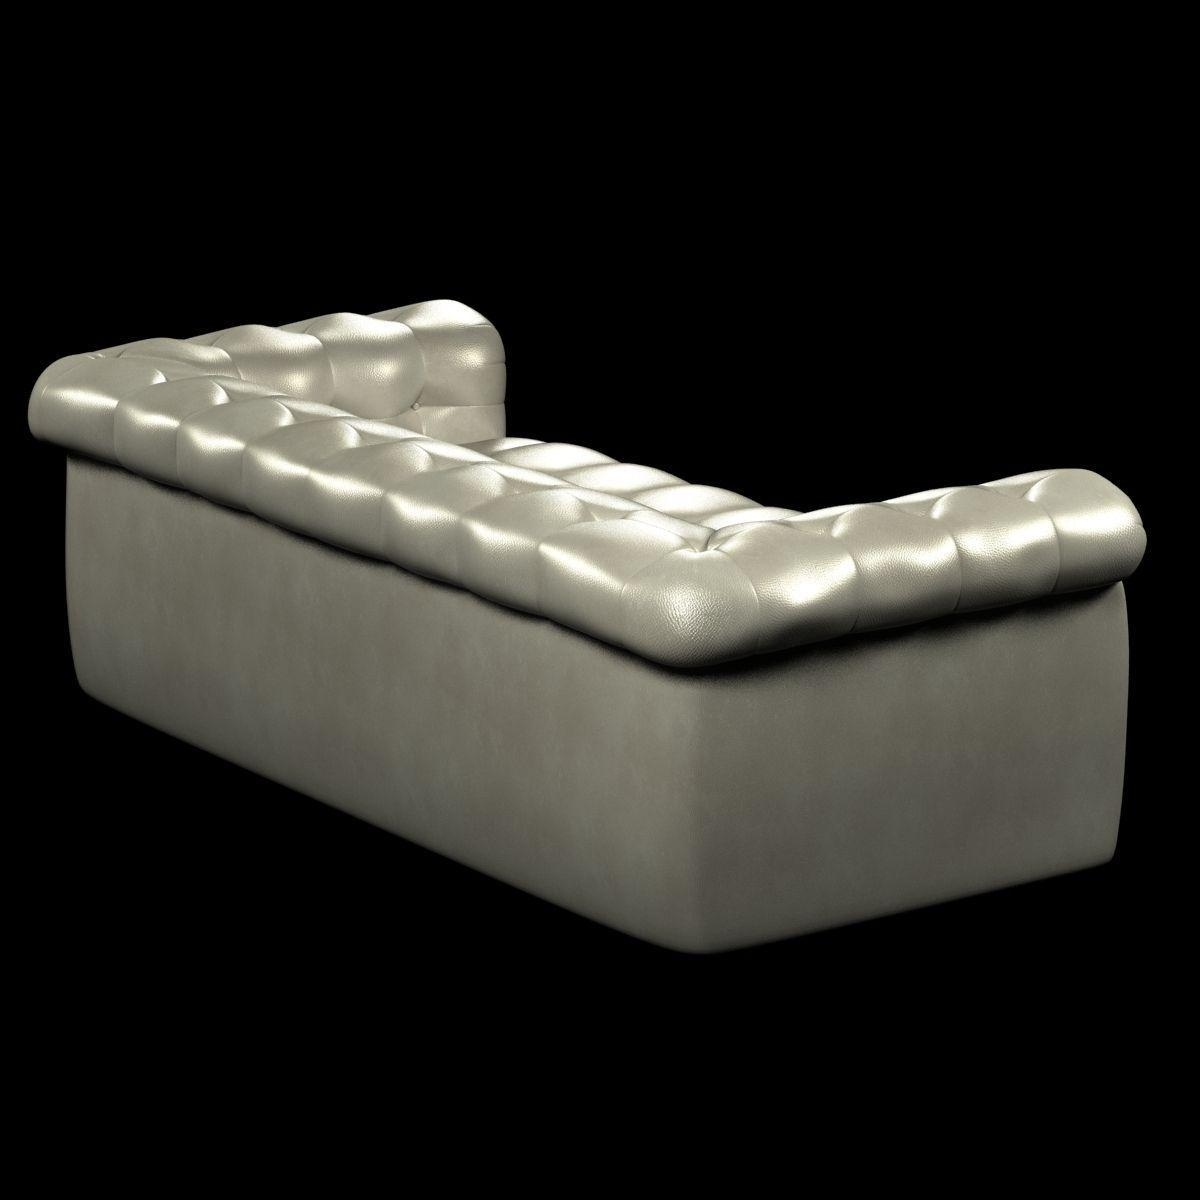 Edward Wormley Dunbar Six Foot Tufted Leather Sofa 3D Model Max In 6 Foot Sofas (View 19 of 22)